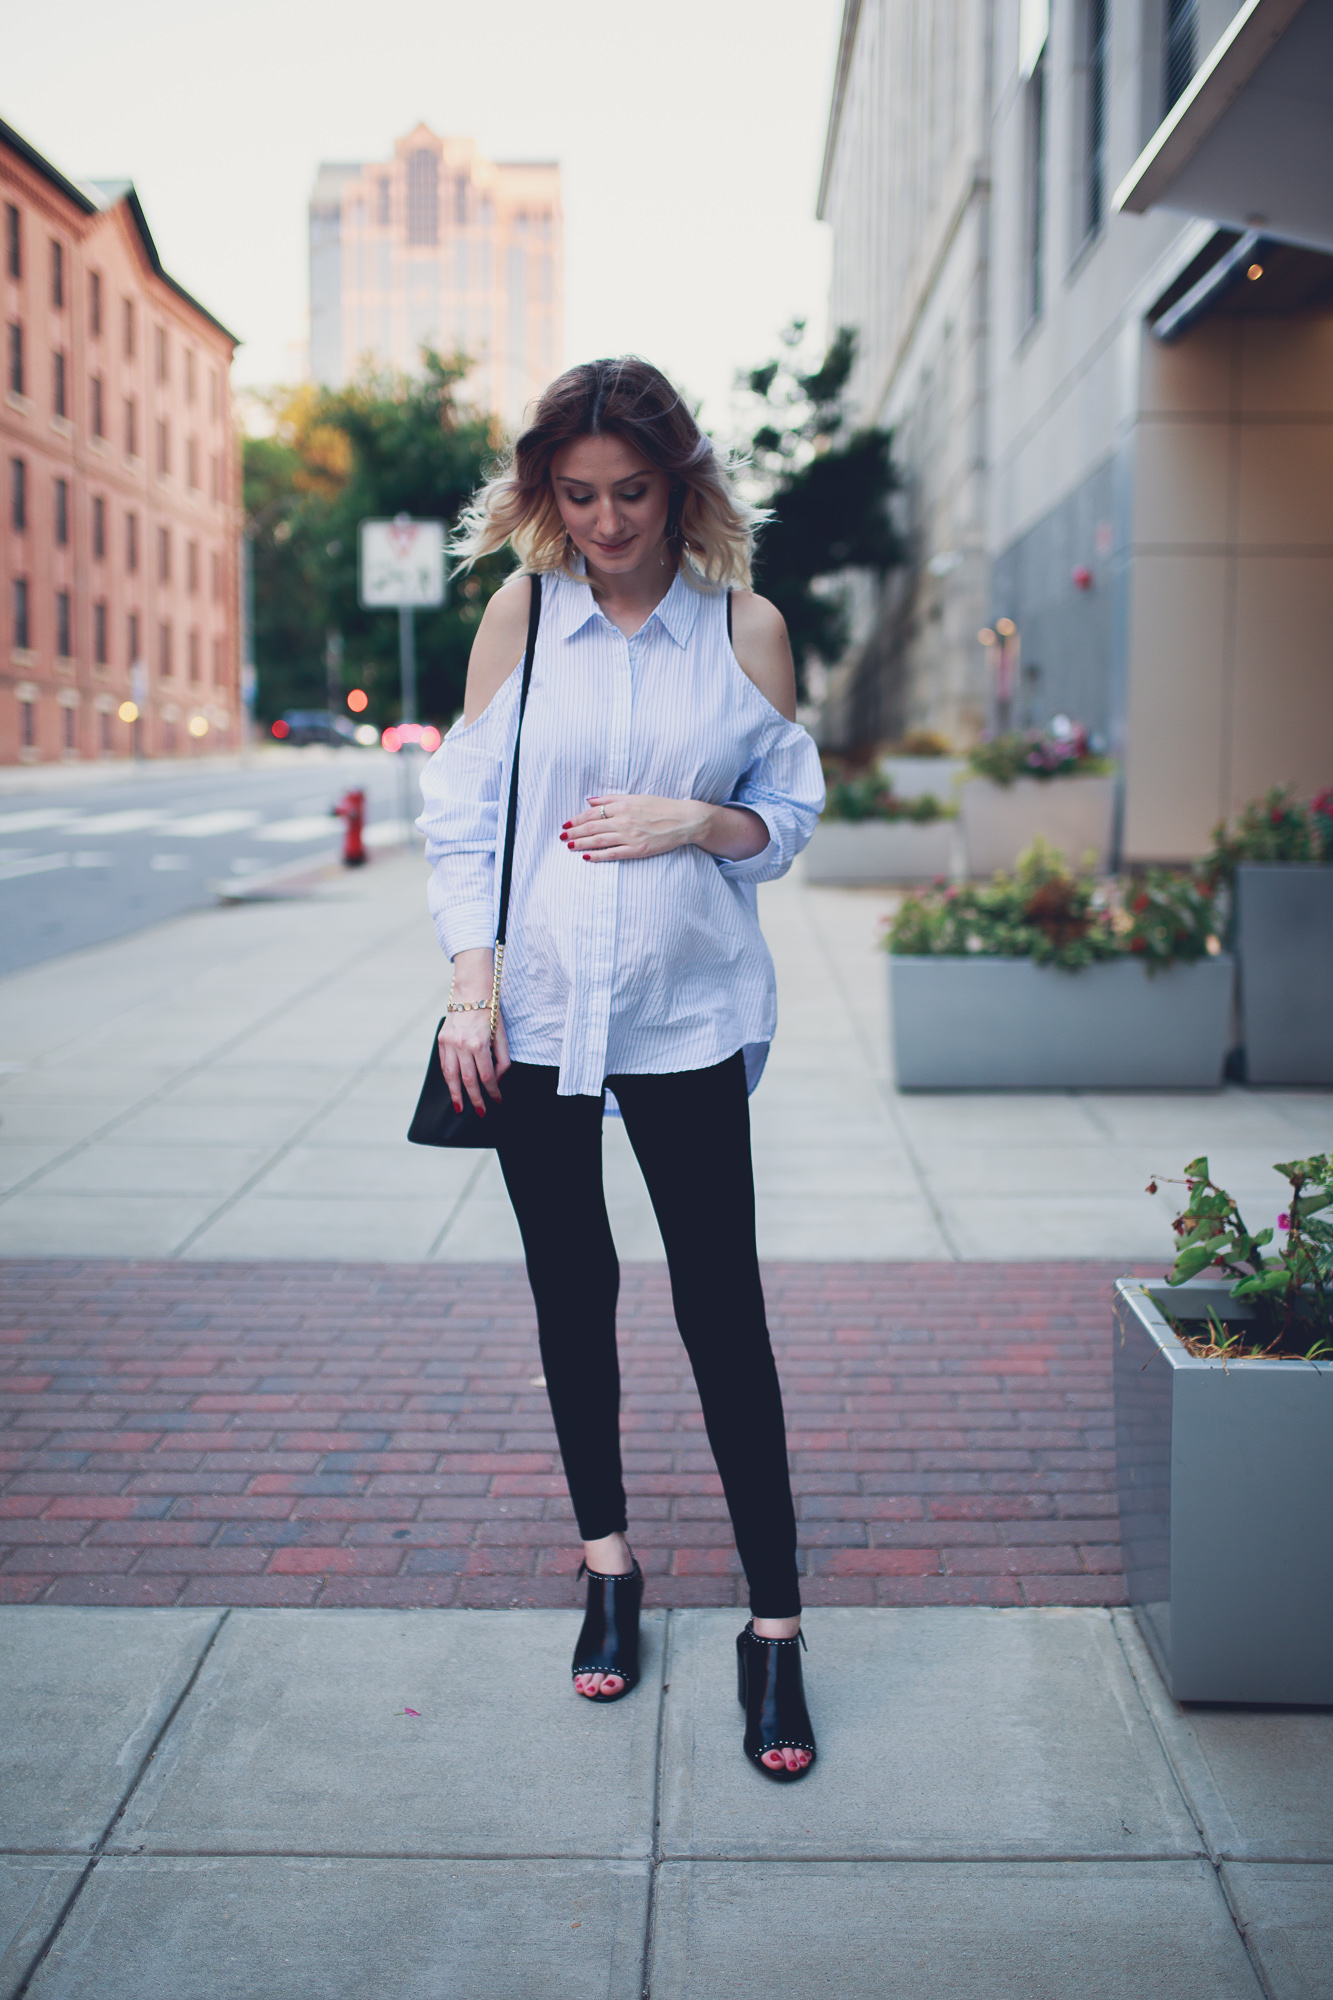 Fashion Blogger and lifestyle blogger Jessica Linn from Linn Style wearing a cold shoulder pinstripe button up blouse from Forever21, black leggings from Romwe, and black silver studded heels from Charming Charlie's also carrying a black and gold Michael Kors Purse. Photos taken in Downtown Raleigh North Carolina.